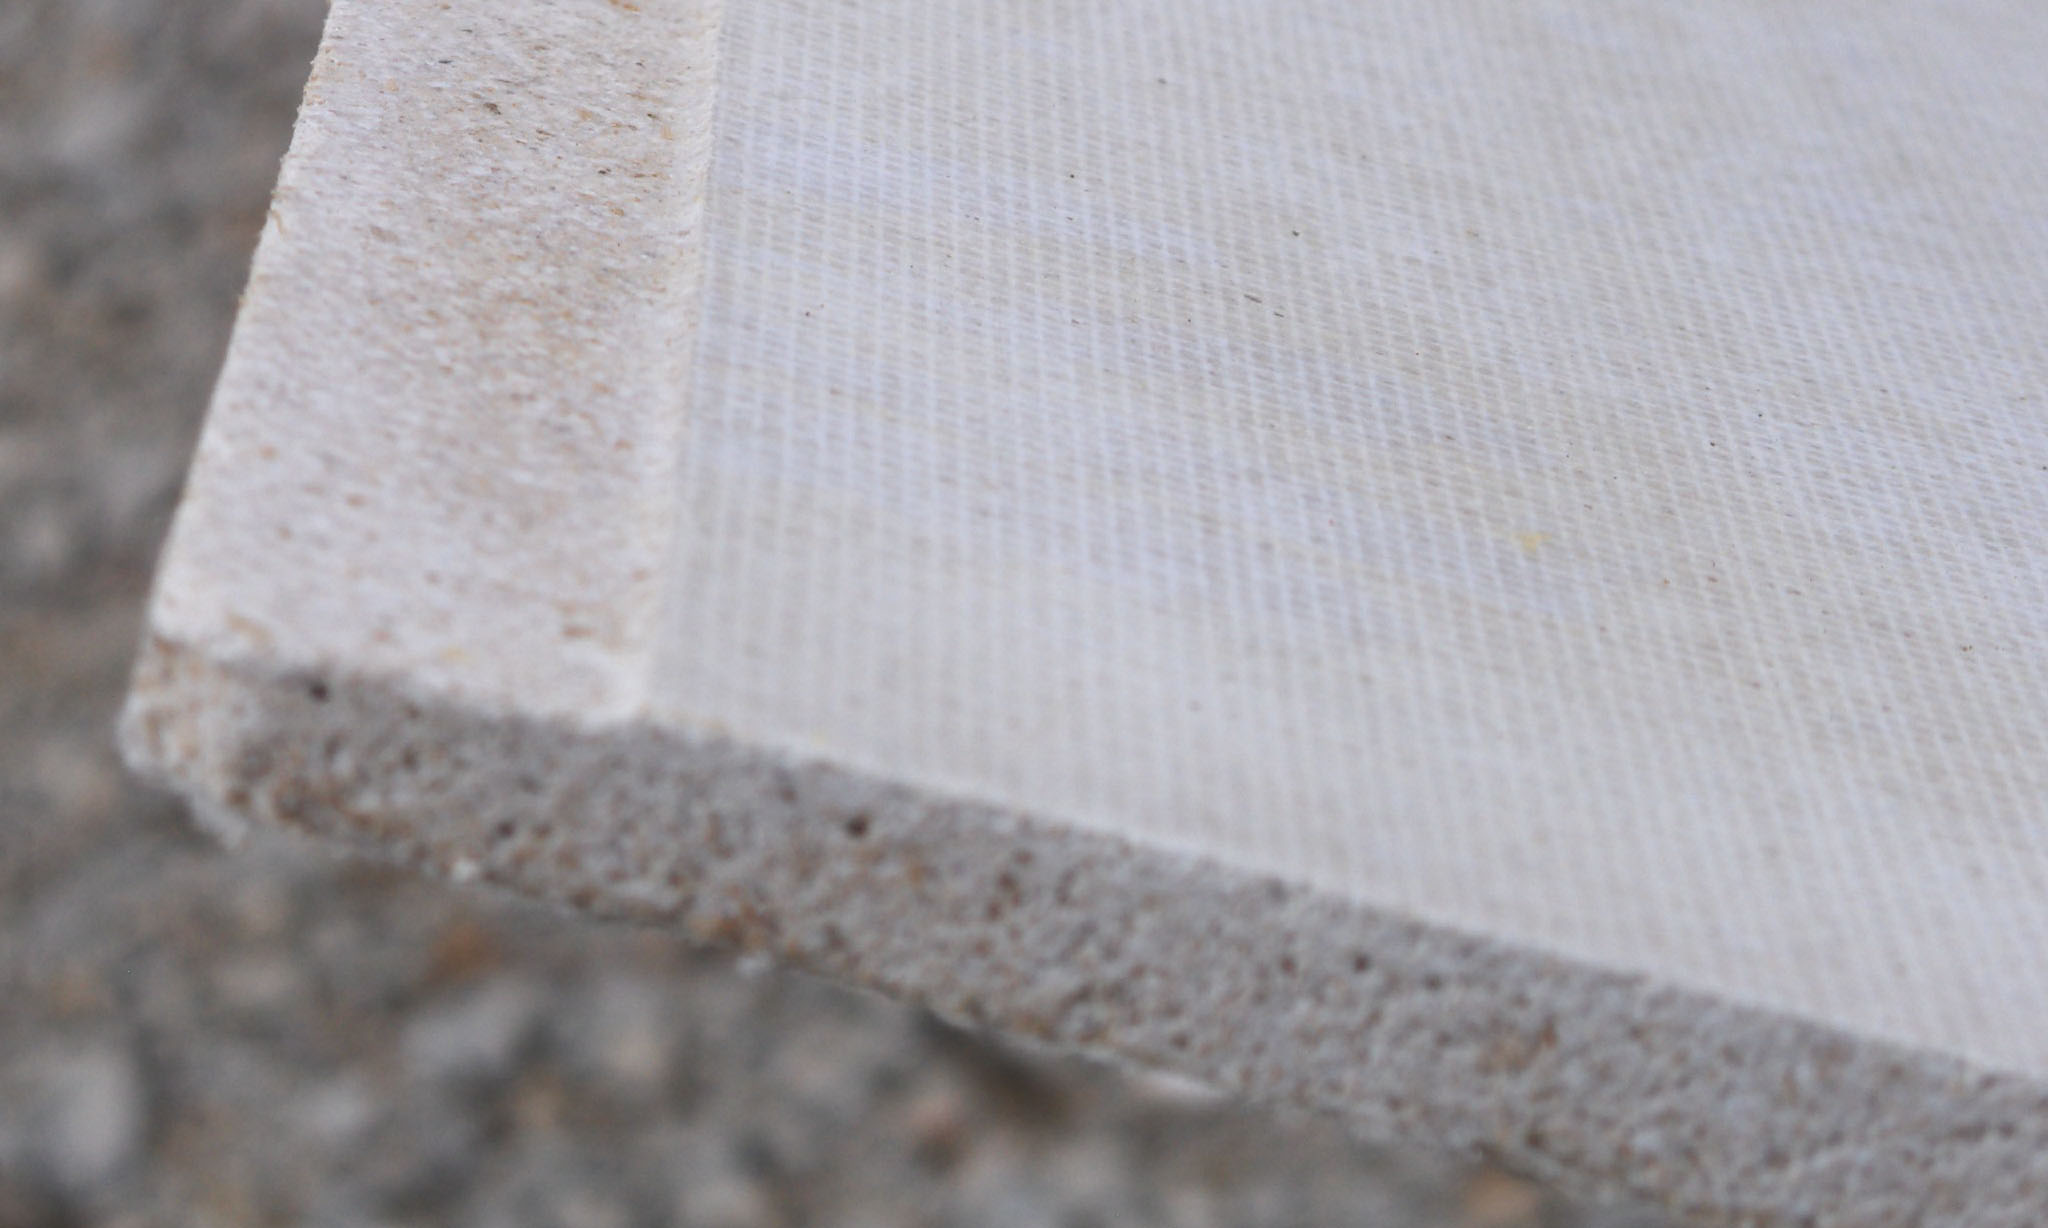 Magnesium oxide wallboard for Is there asbestos in drywall